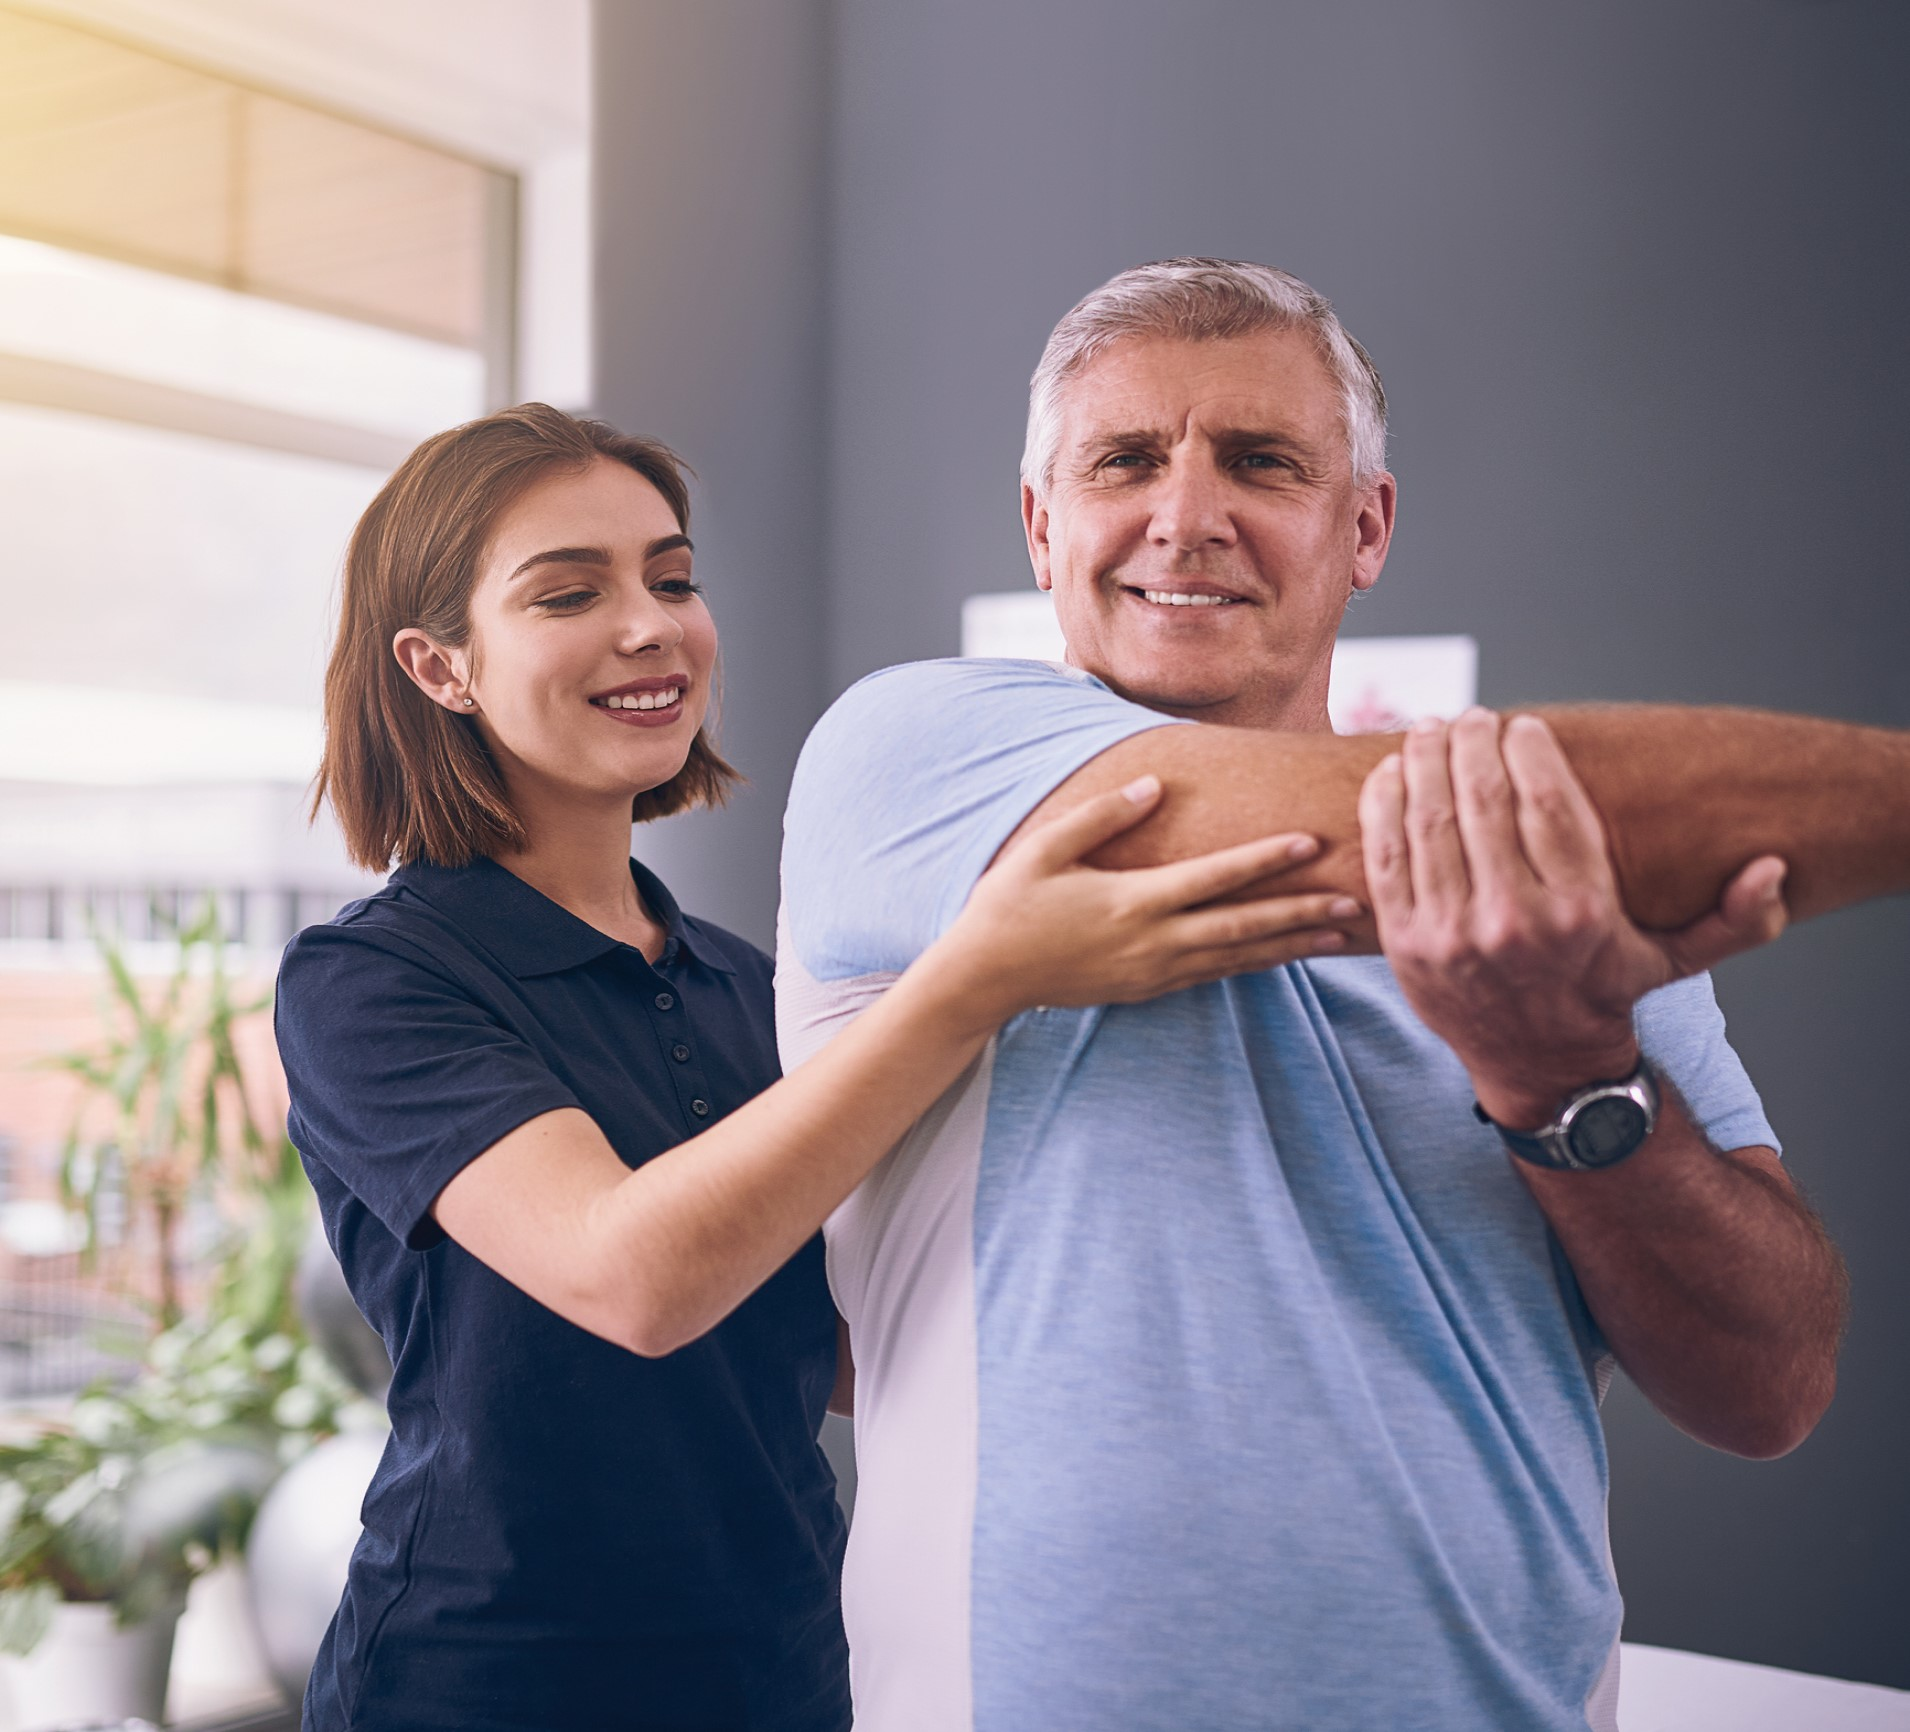 Man stretching his arm during a physiotherapy session